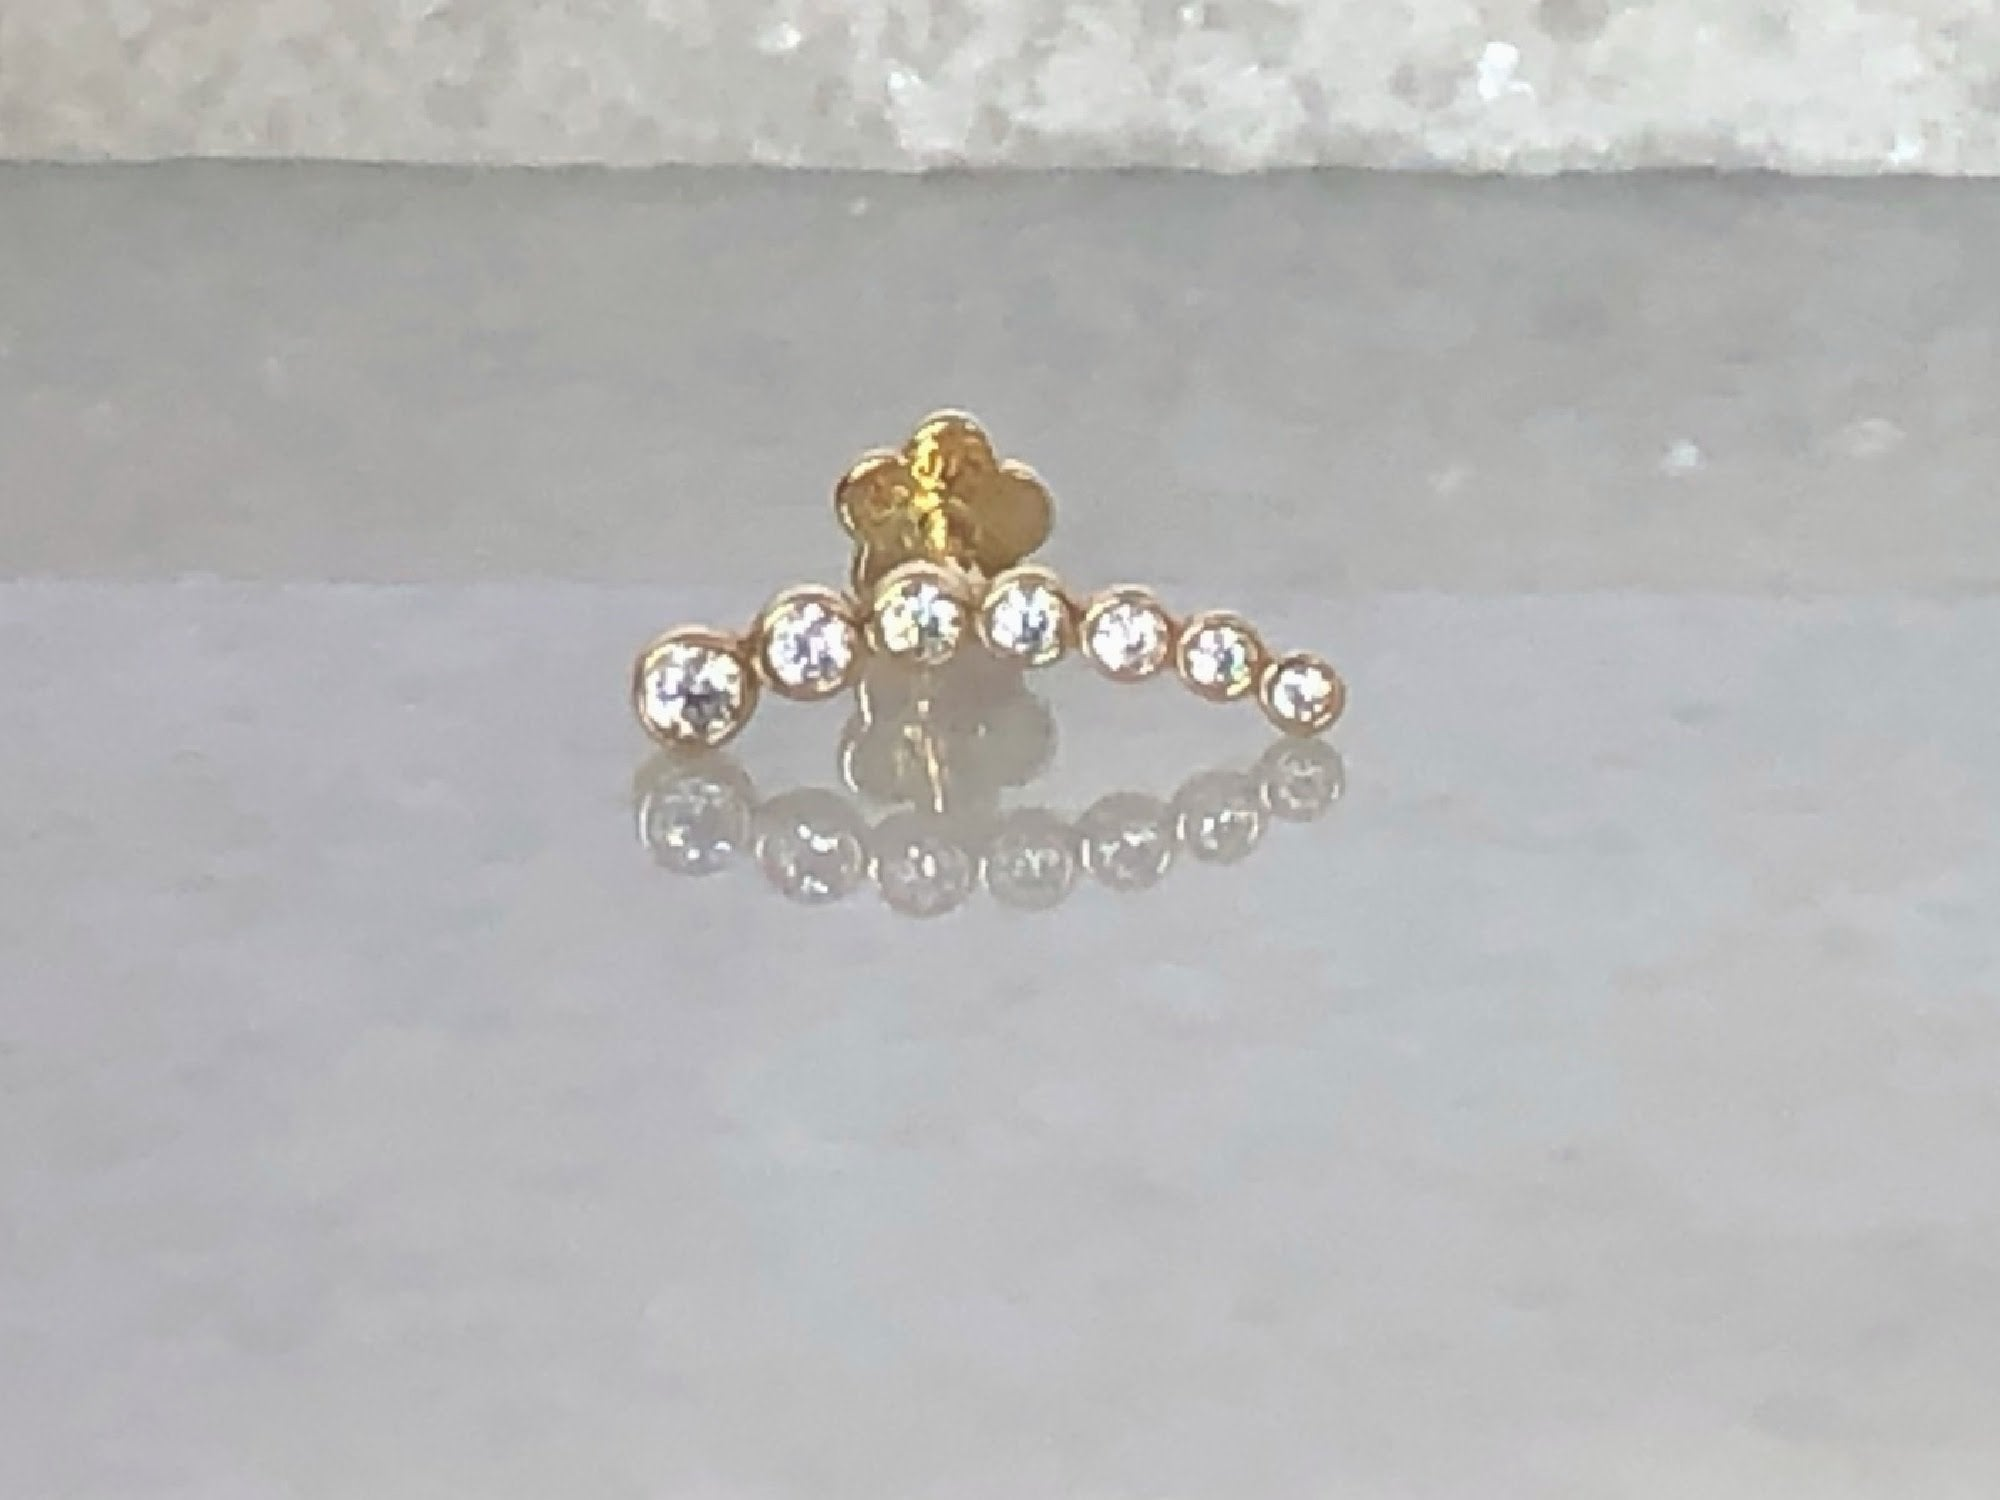 Curved Bar Stud Earring | Piercing Earrings | Solid Gold Hypoallergenic Jewelry | Helix, Tragus, Cartilage | Two of Most Fine Jewelry